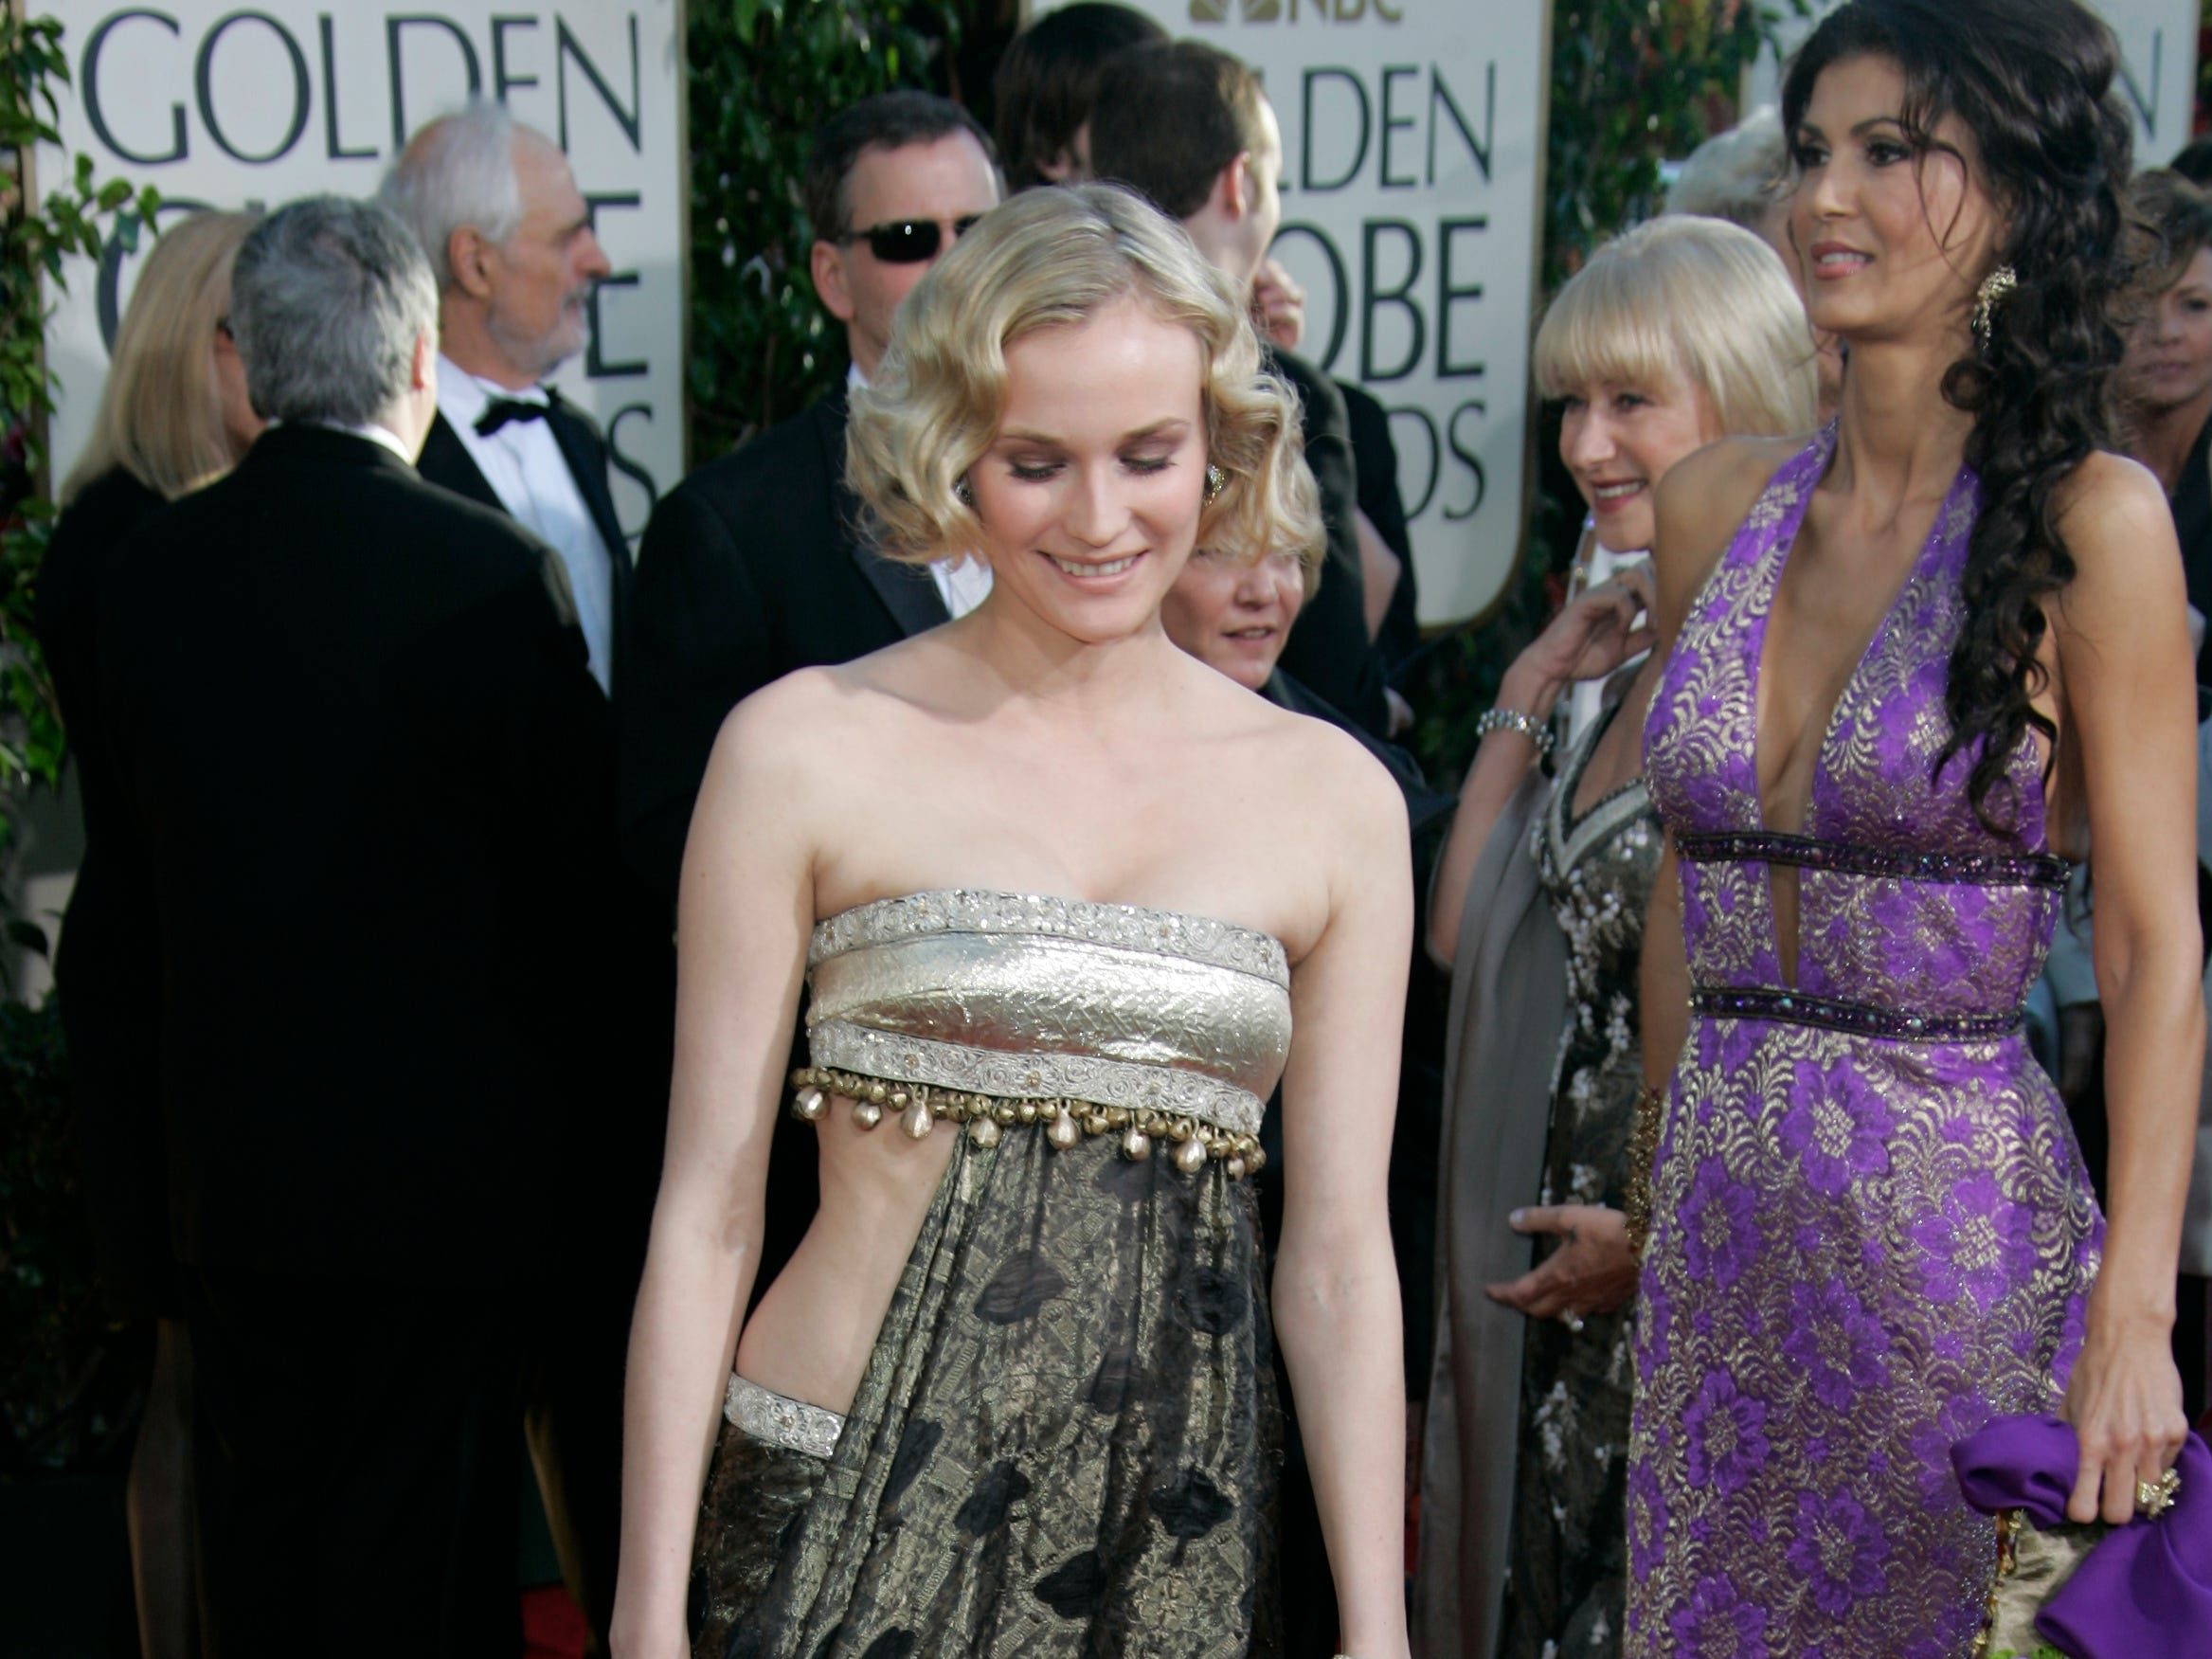 1/16/2005: Golden Globe Awards -- Beverly Hills, CA --   Diane Kruger makes an arrival on the red carpet at the Beverly Hilton Hotel for the Golden Globe Awards. (photo by Dan MacMedan, USA TODAY) (Via MerlinFTP Drop)